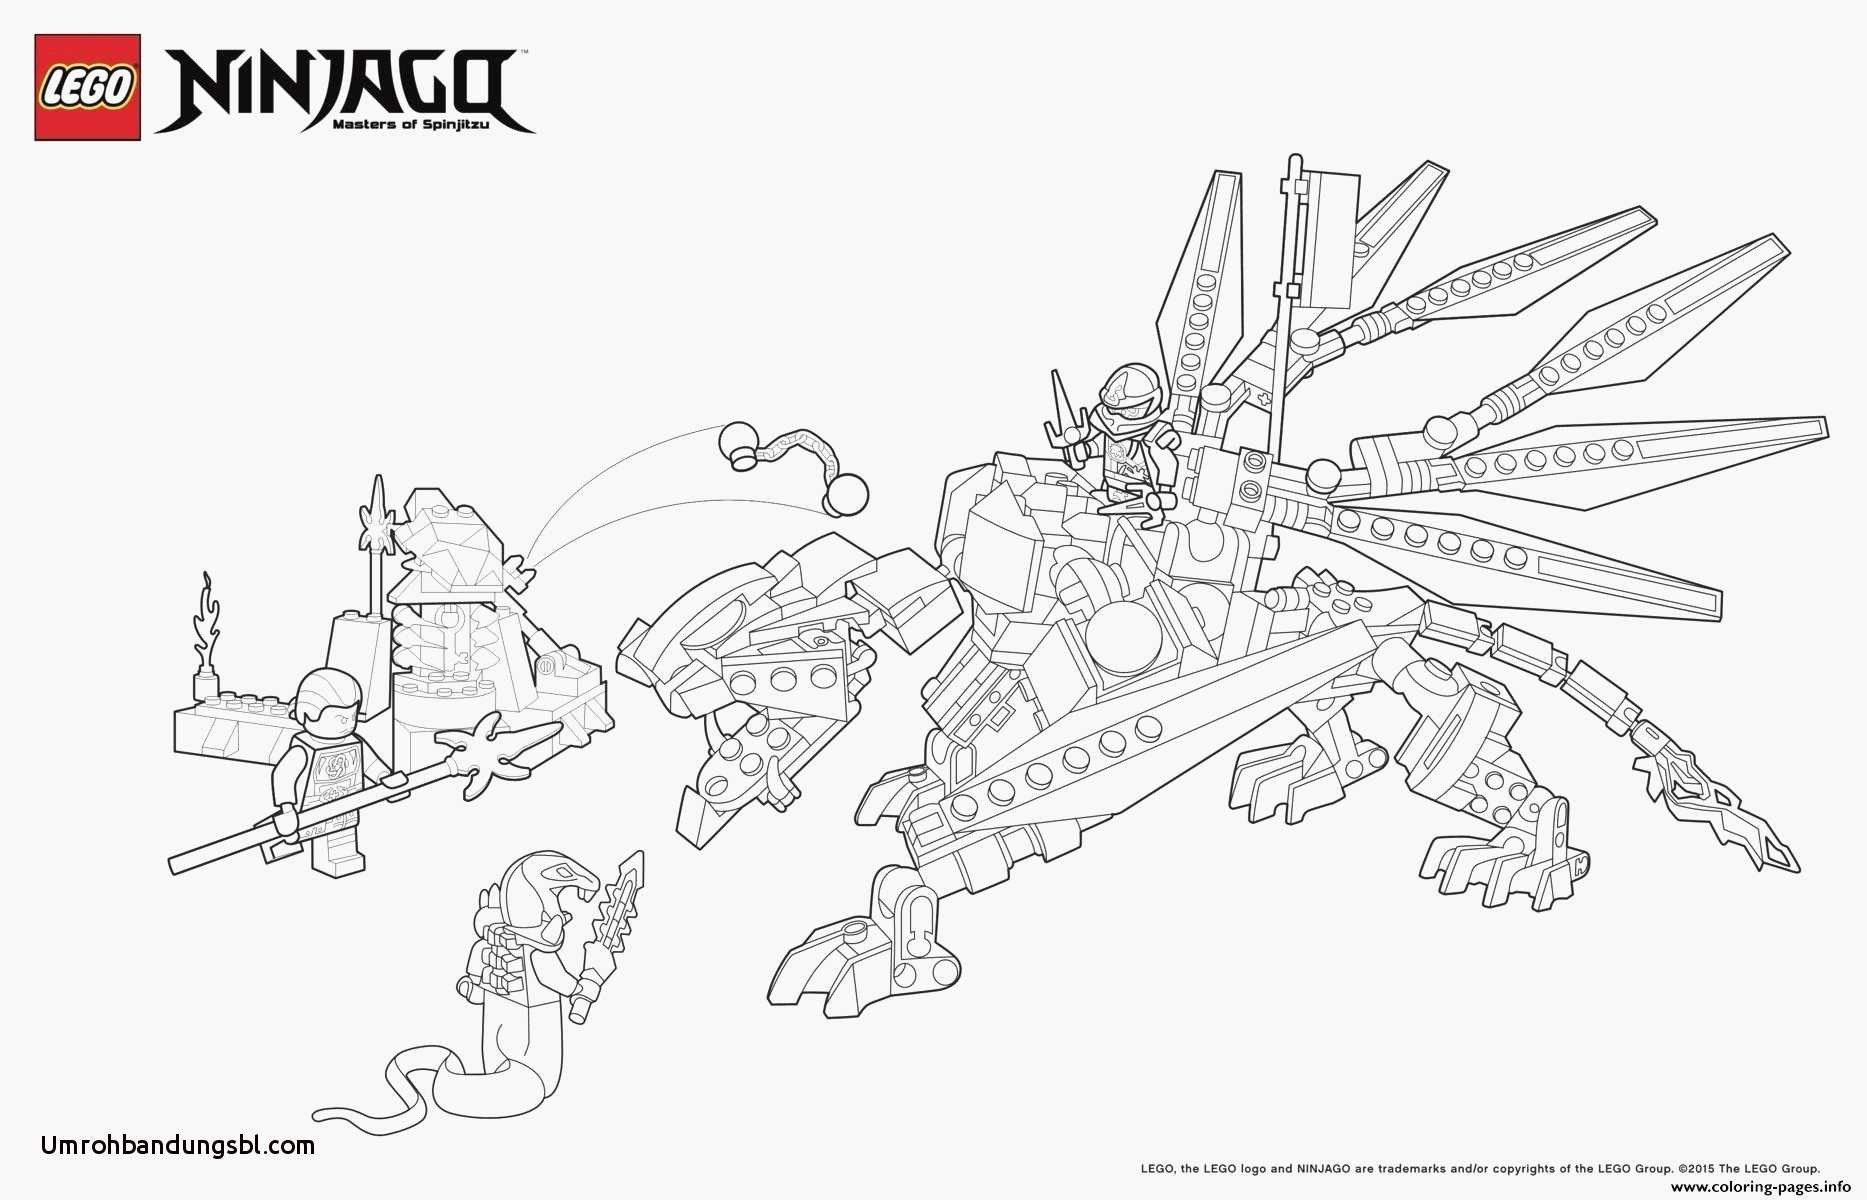 Lego Spiderman Coloring Pages Best Of Truthahn Maske Vorlage Inspirational Lego Hobbit Colo In 2020 Dragon Coloring Page Turkey Coloring Pages Christmas Coloring Pages